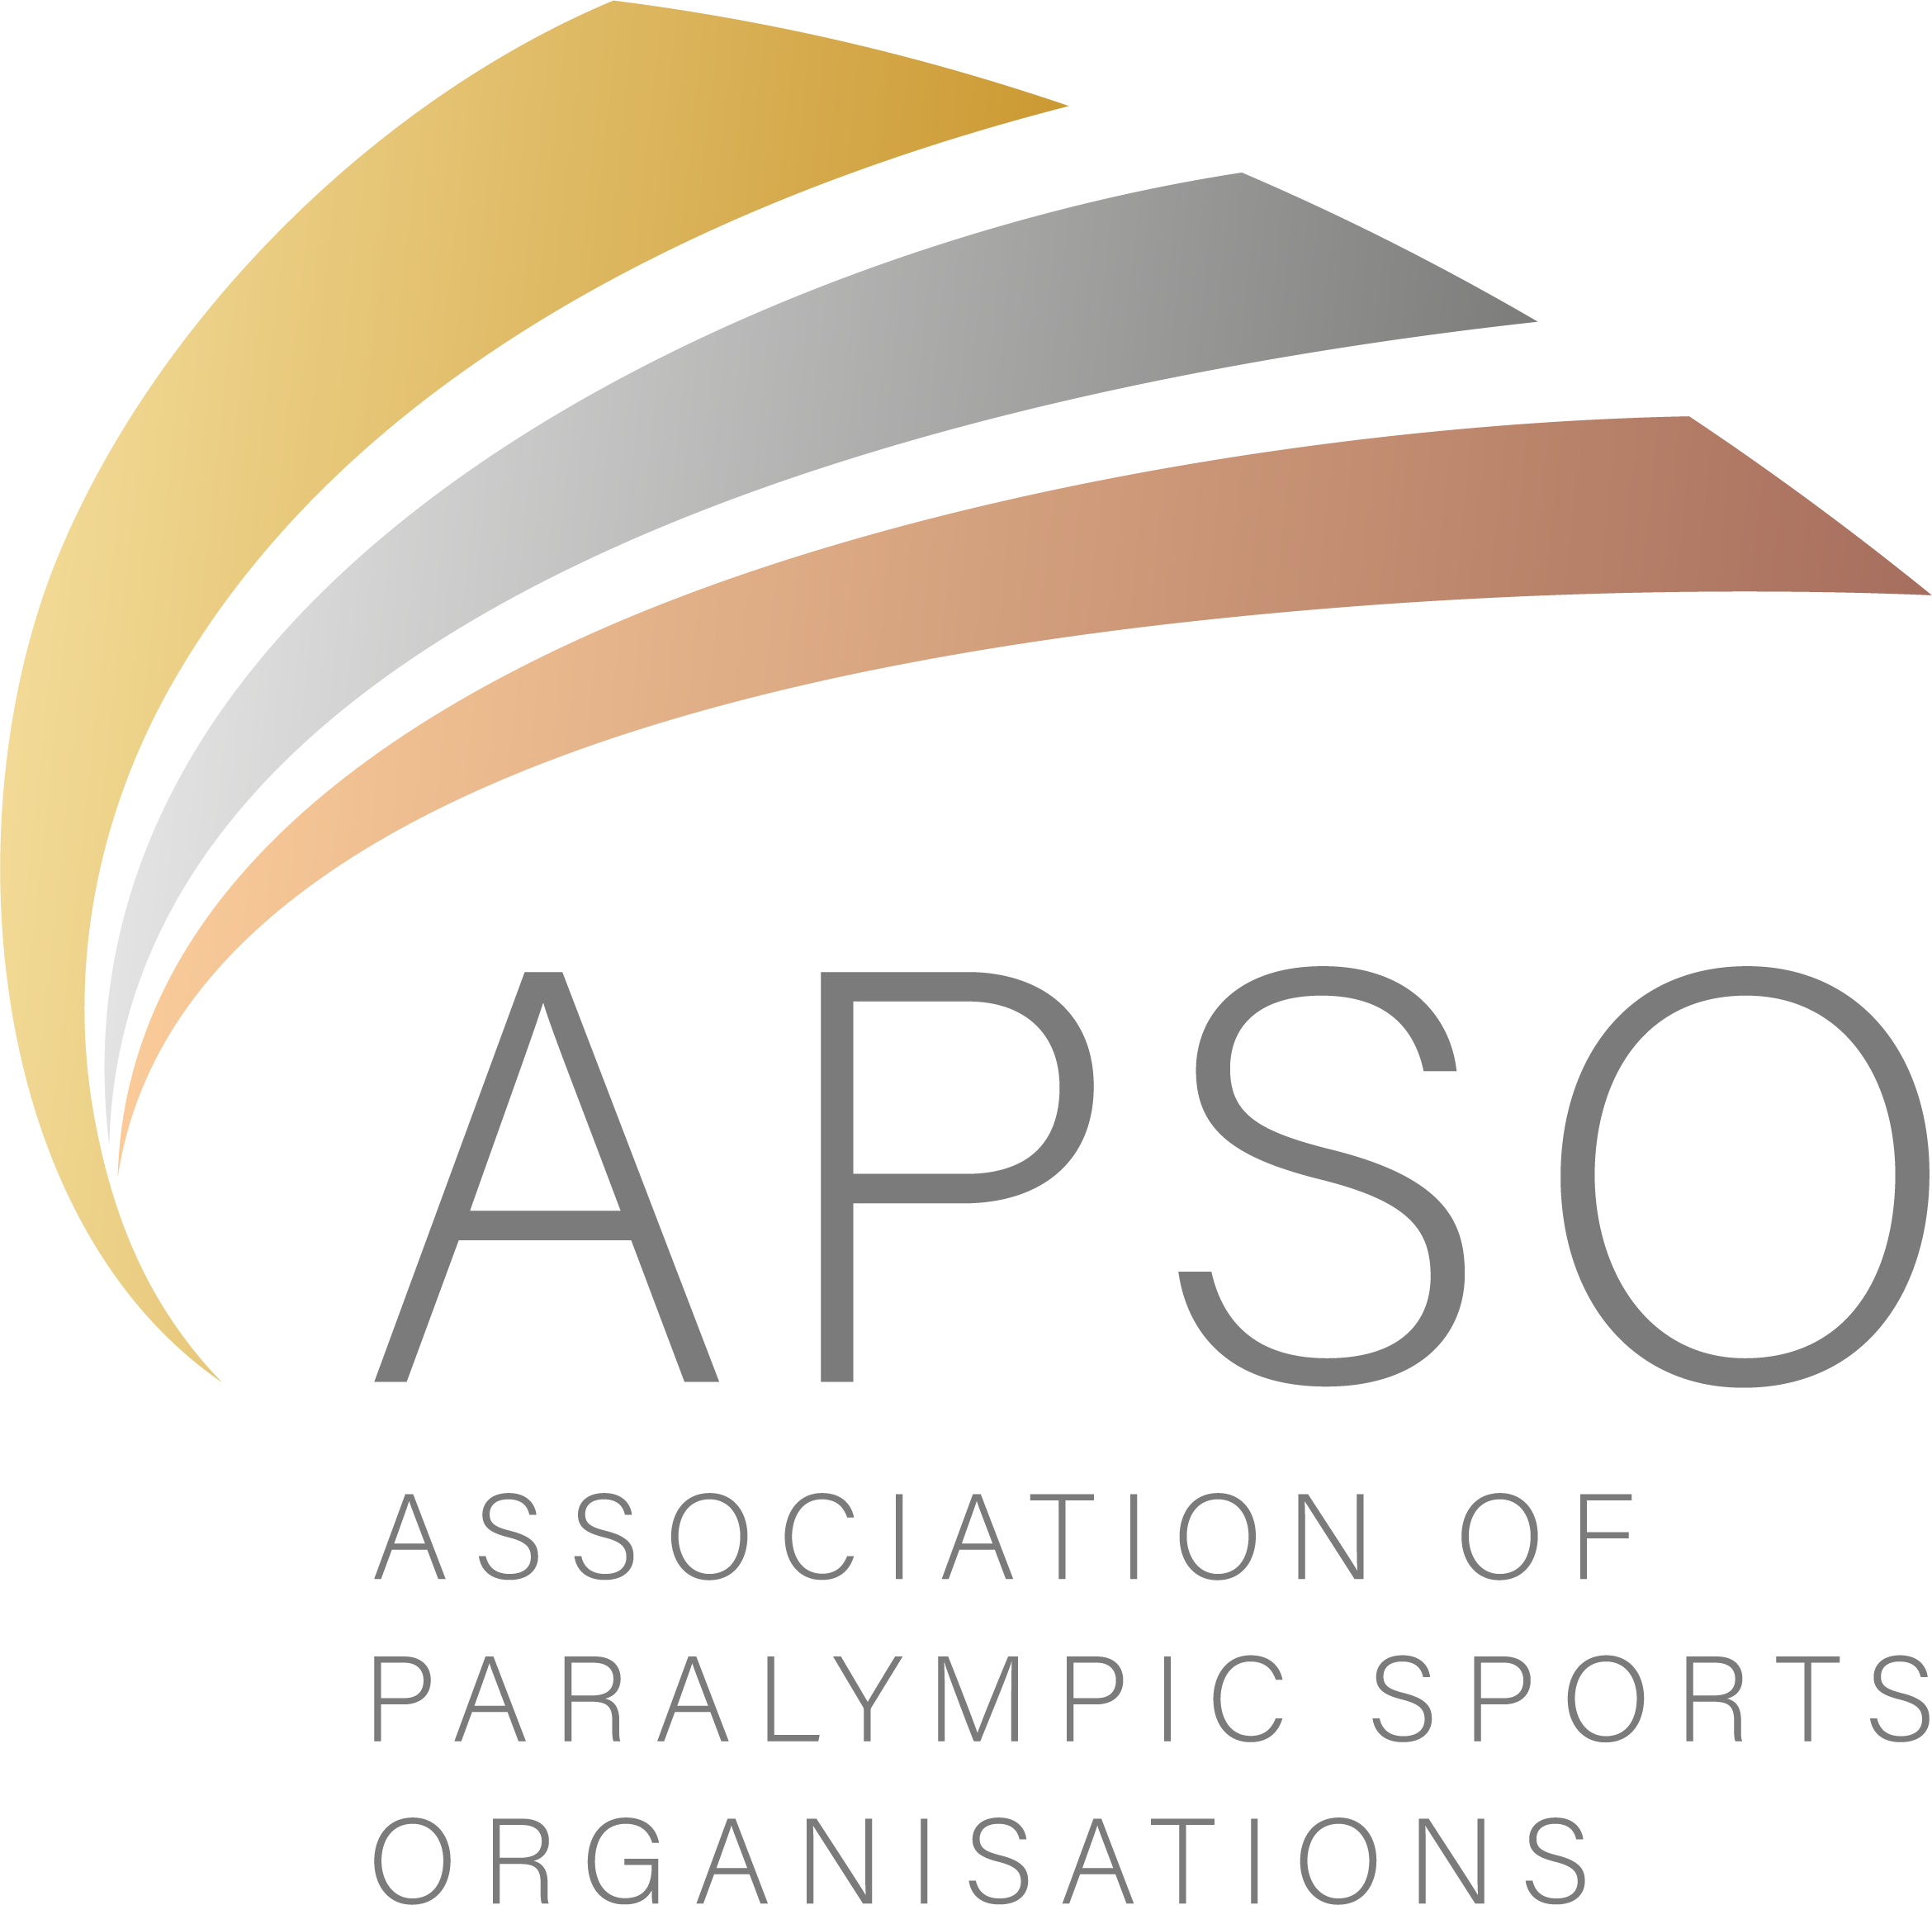 ASSOCIATION OF PARALYMPIC SPORTS ORGANISATIONS